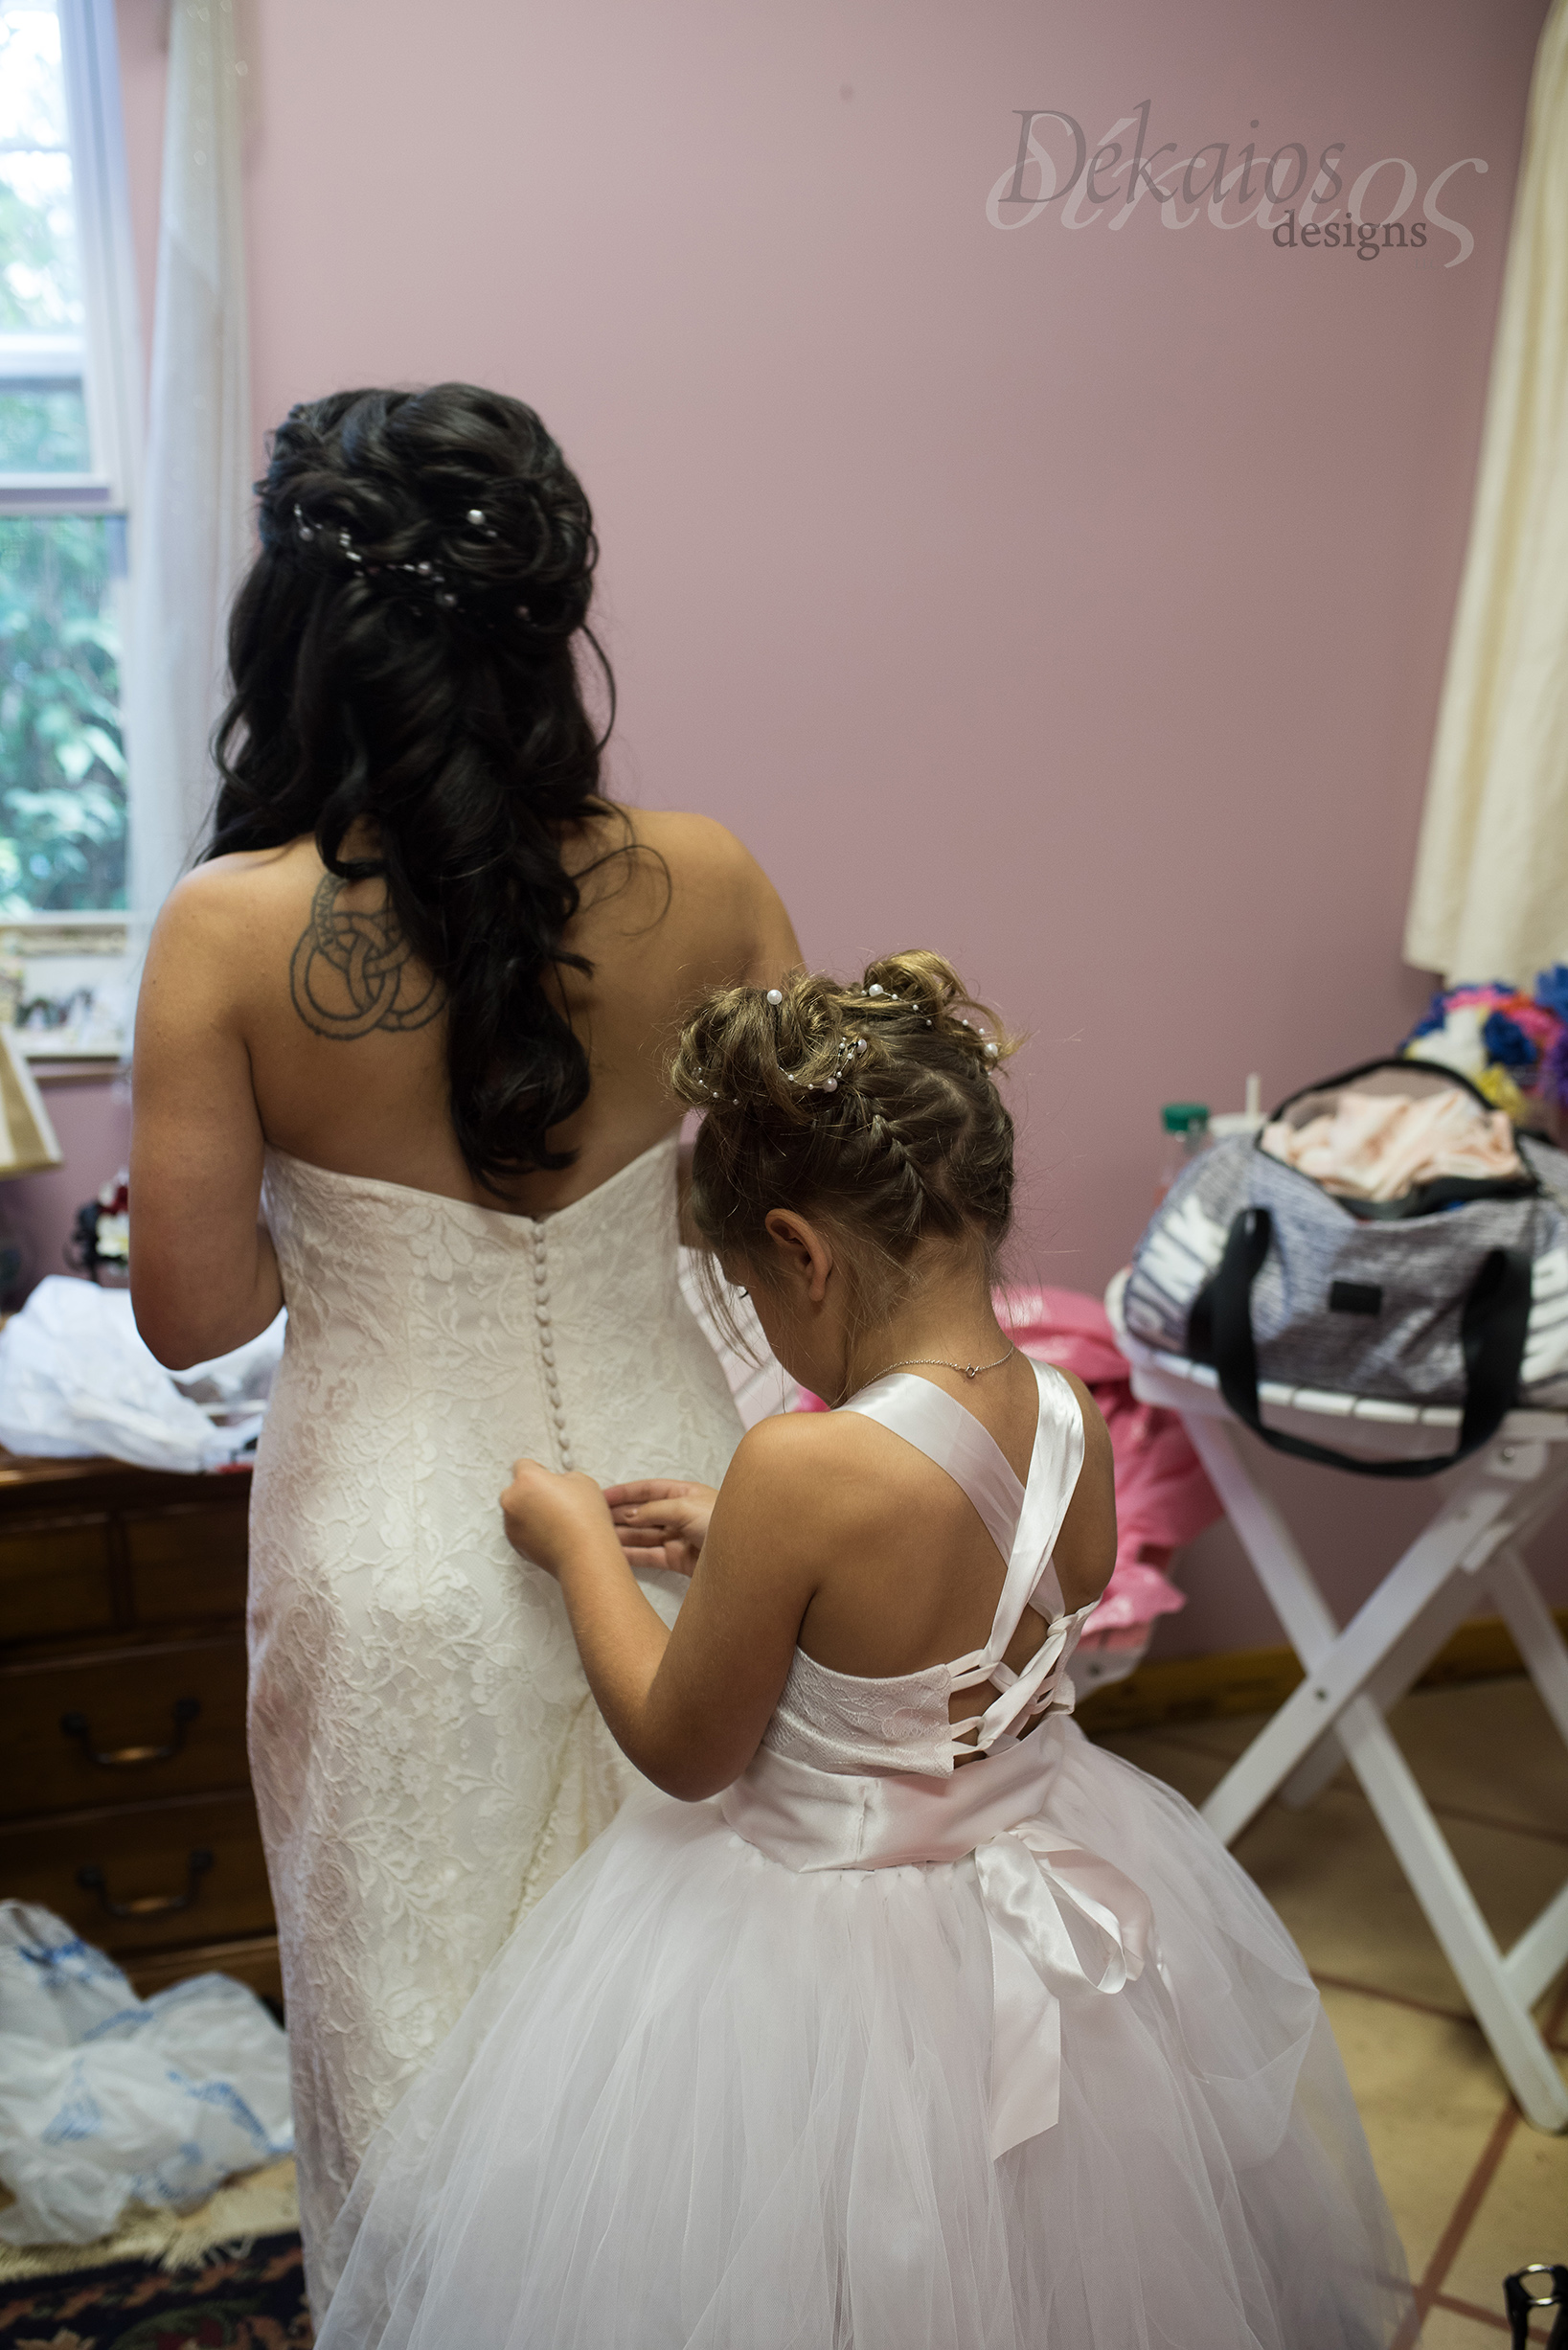 I entered to this sweet moment where Kristen's daughter was helping mom button her dress. So memorable and special, it's these moments that get me. I love what I do!